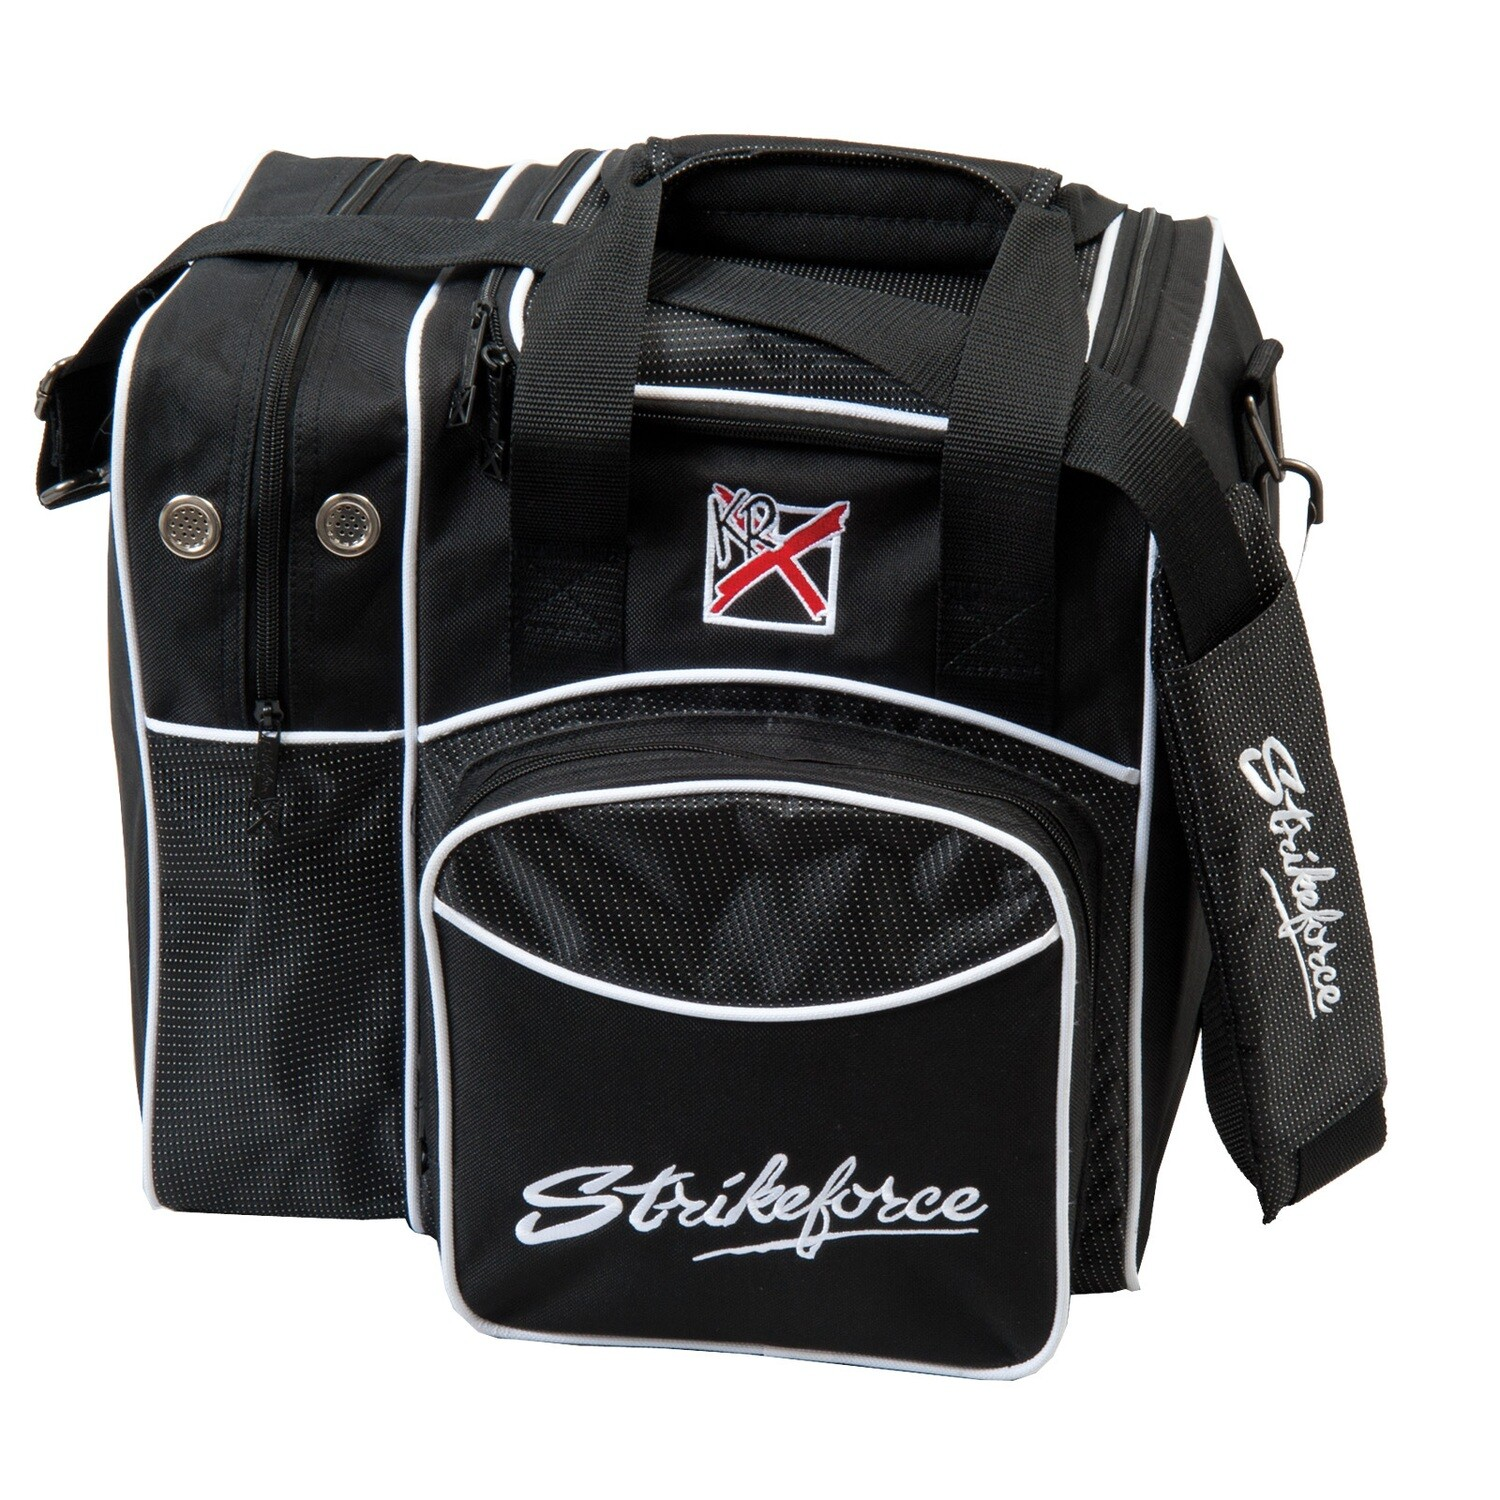 KR Strikeforce Black Flexx Single Tote Bowling Bag